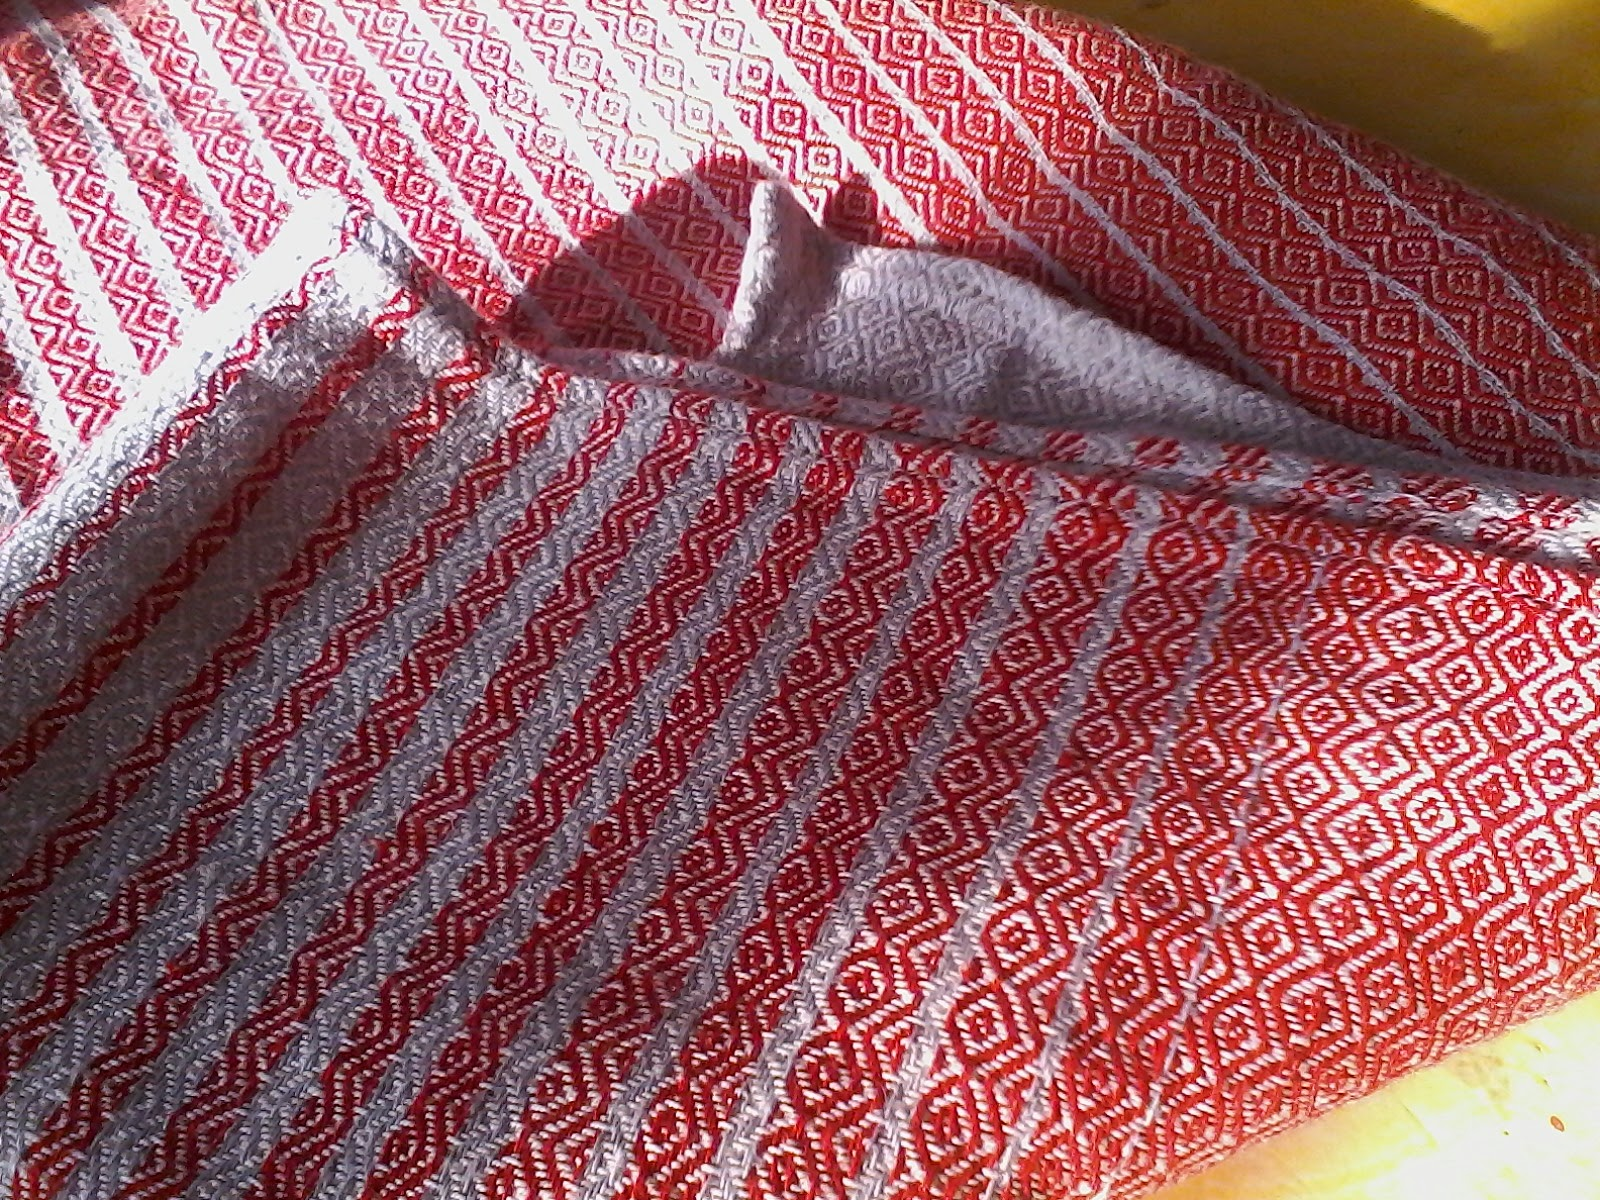 hilla slings wrap diamond weaving pattern écharpe coton lin bambin handwoven